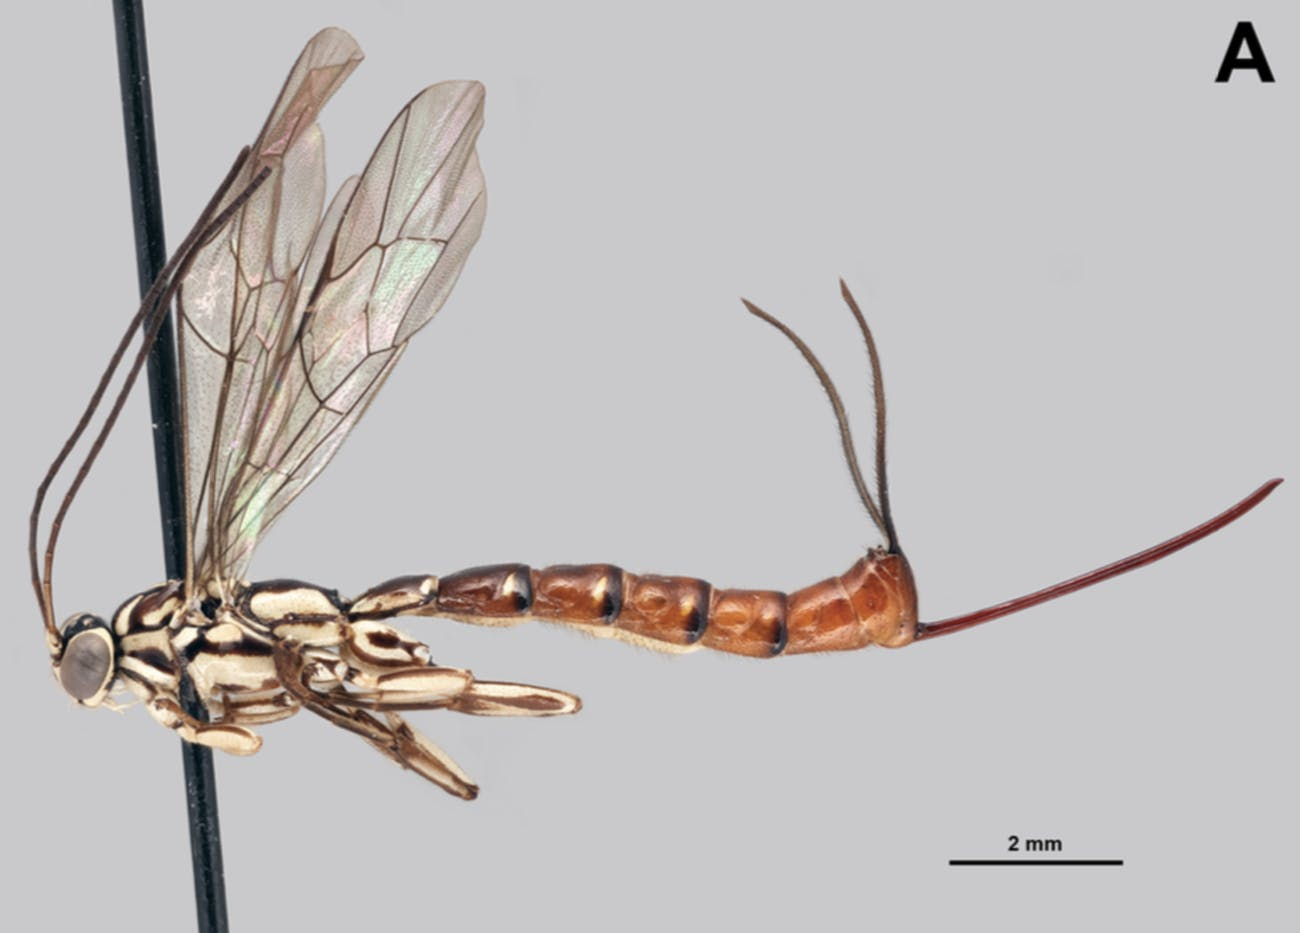 Clistopyga isayae, like other membrs of its genus, has a wild looking ovipositor, an adapted stinger through which it lays eggs.